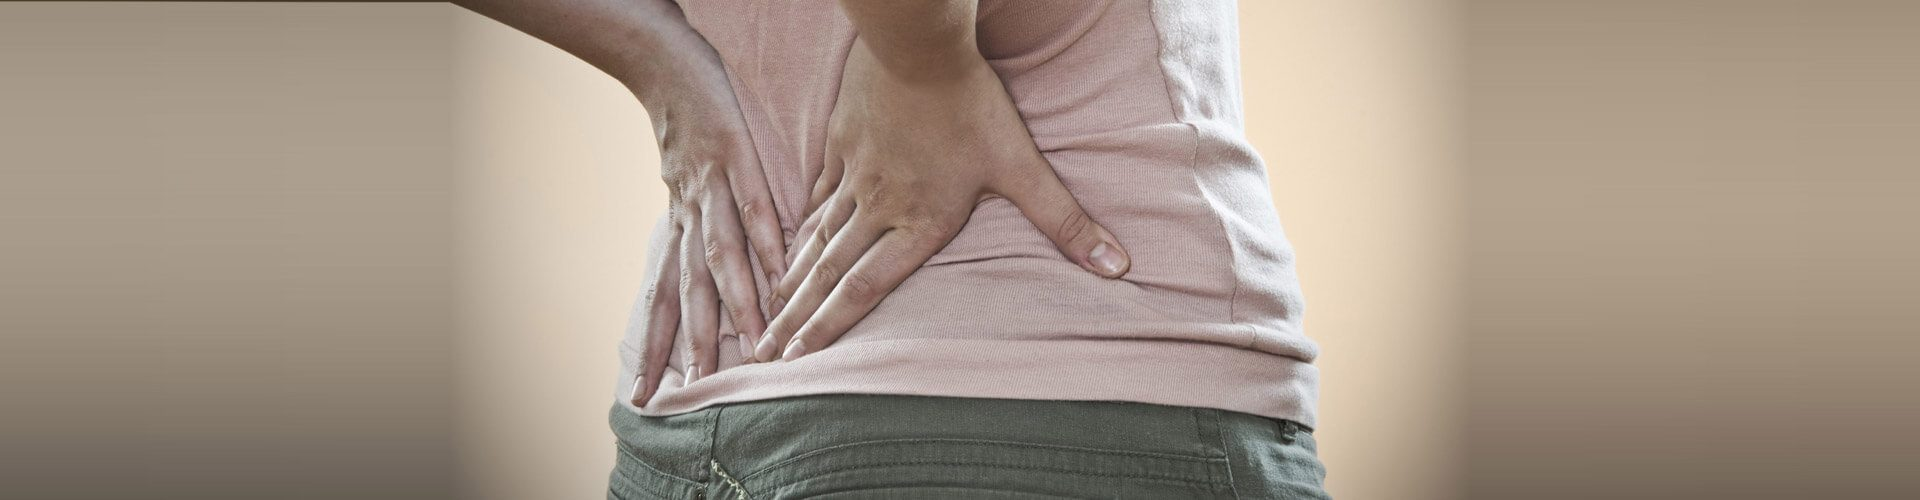 Tips for Managing and Avoiding Back Pain